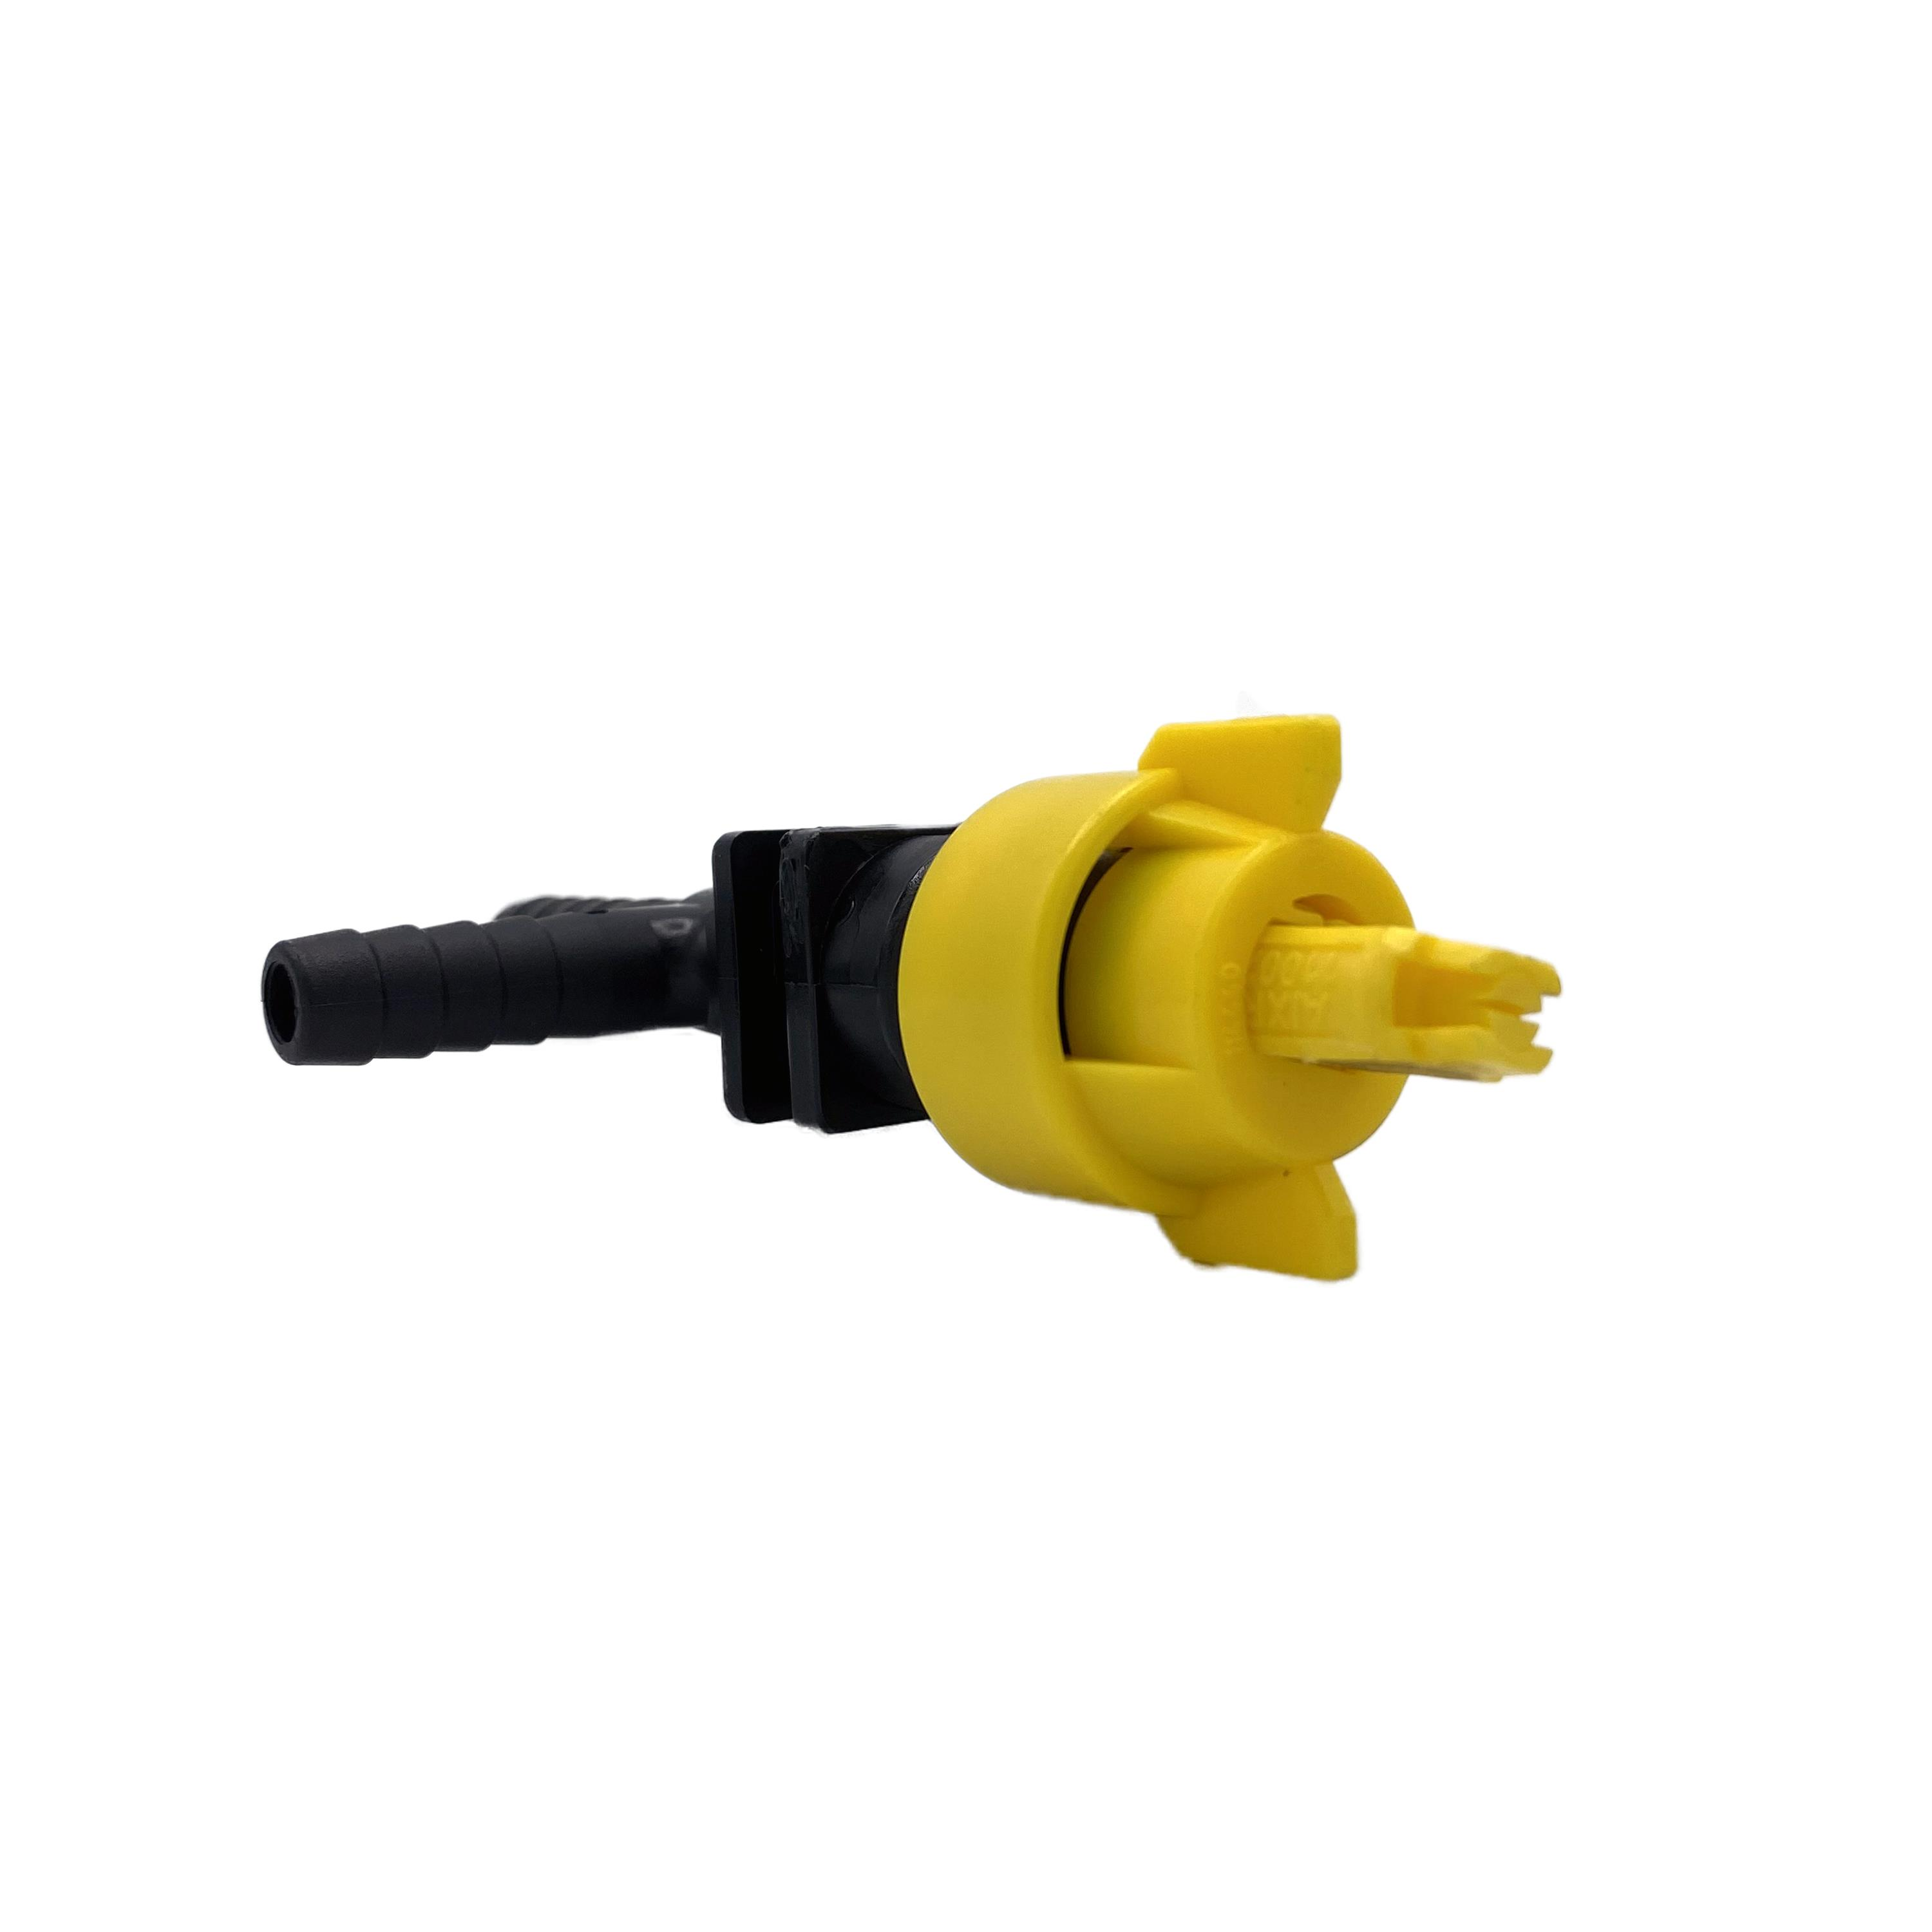 Nozzle pump infinity as ref 204938-manufacturer airace